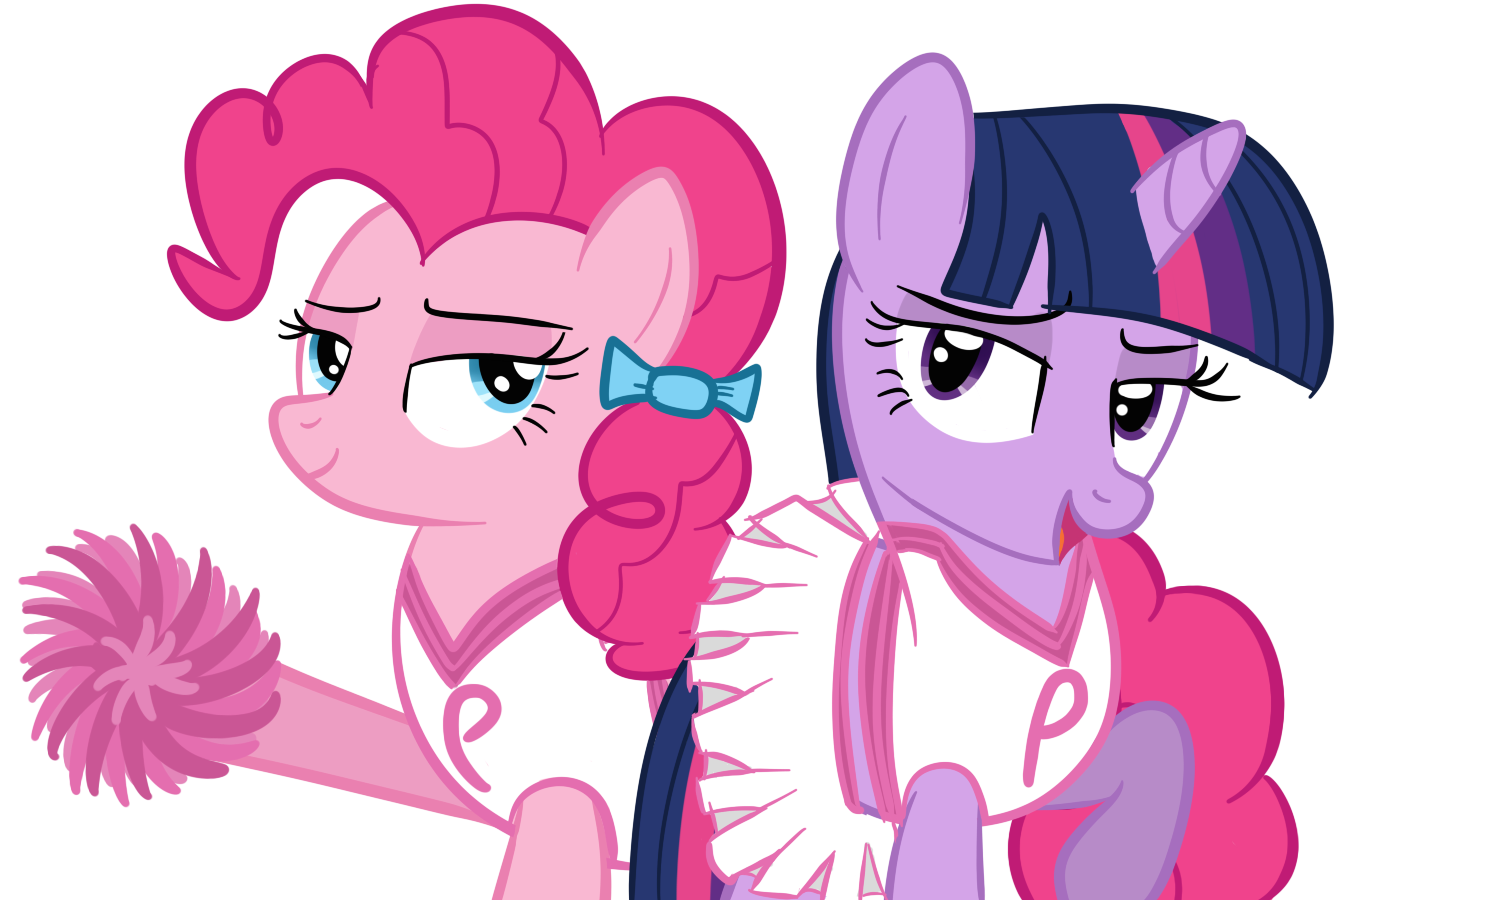 Anime sparkles png. Image pinkie pie and